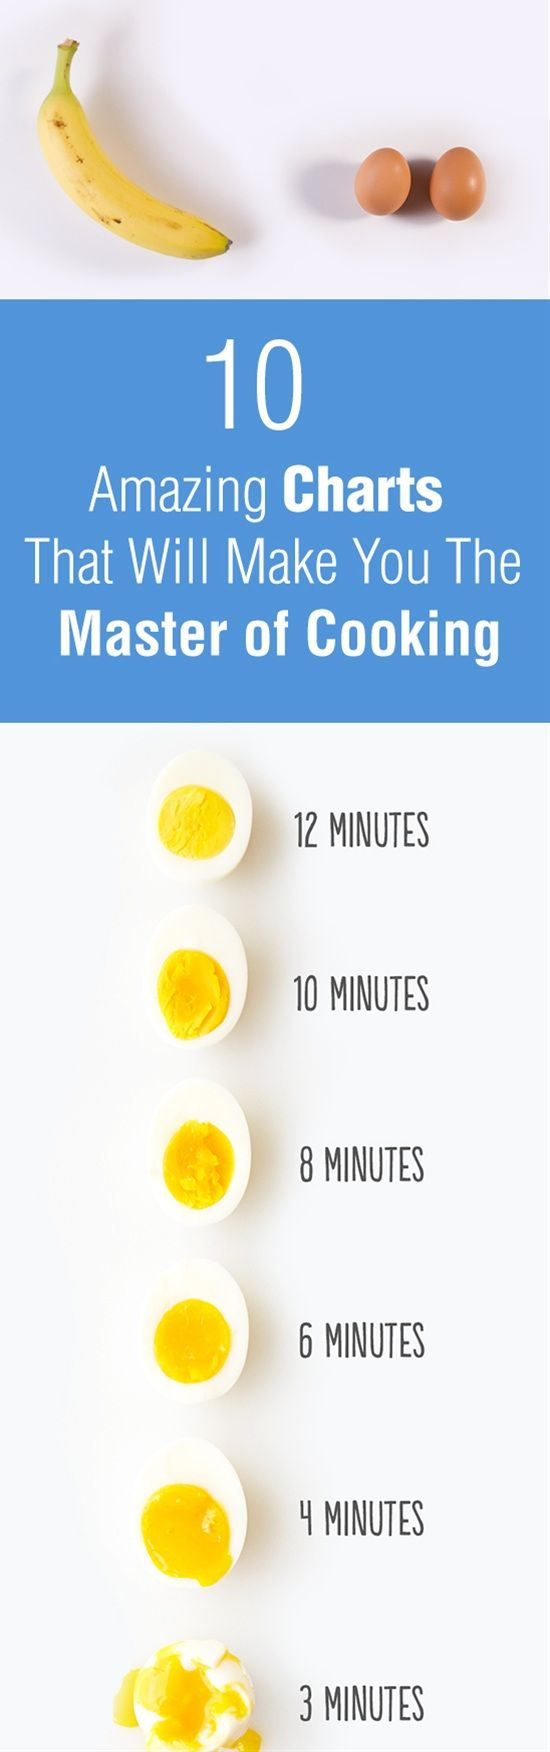 These 10 super useful charts will make everything easier for you when it comes to cooking and baking. You're the master now show'em your skills.